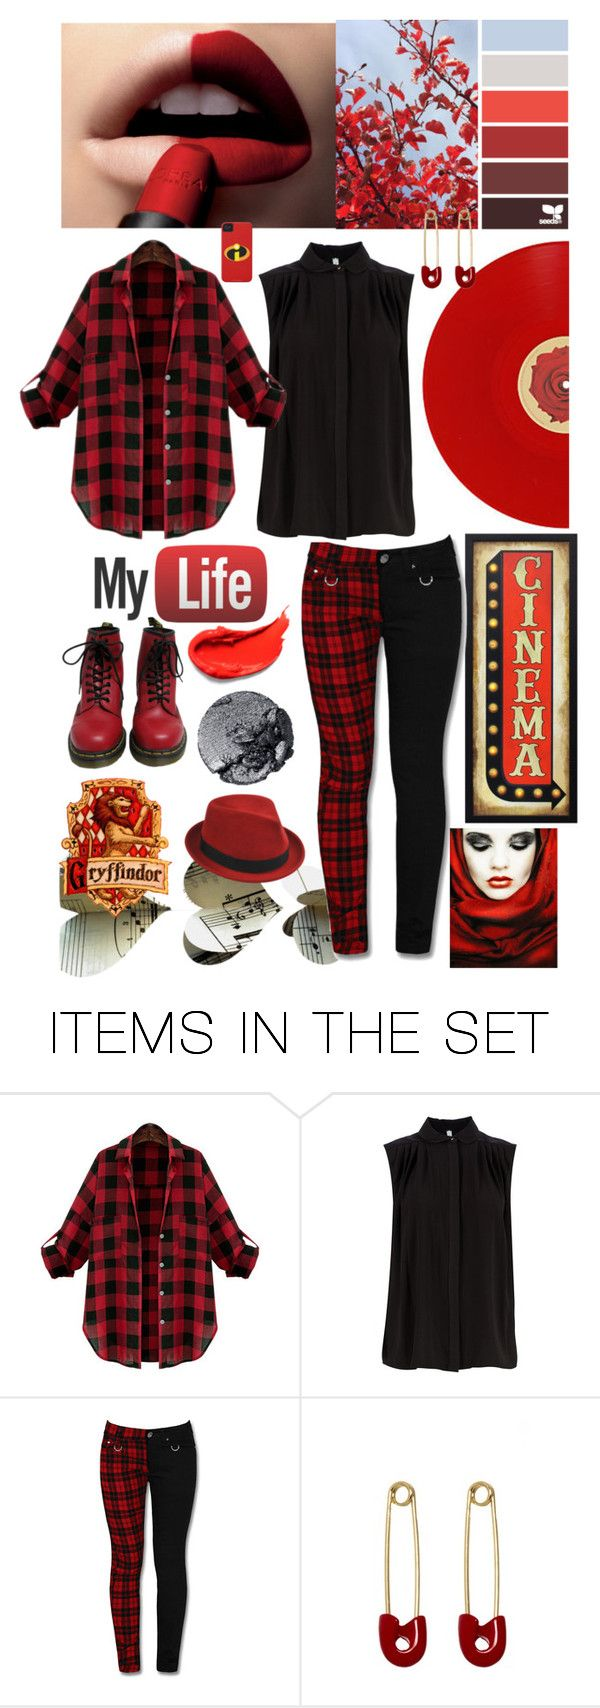 """""""bordo red rules"""" by ira-andrea-potnar ❤ liked on Polyvore featuring art"""